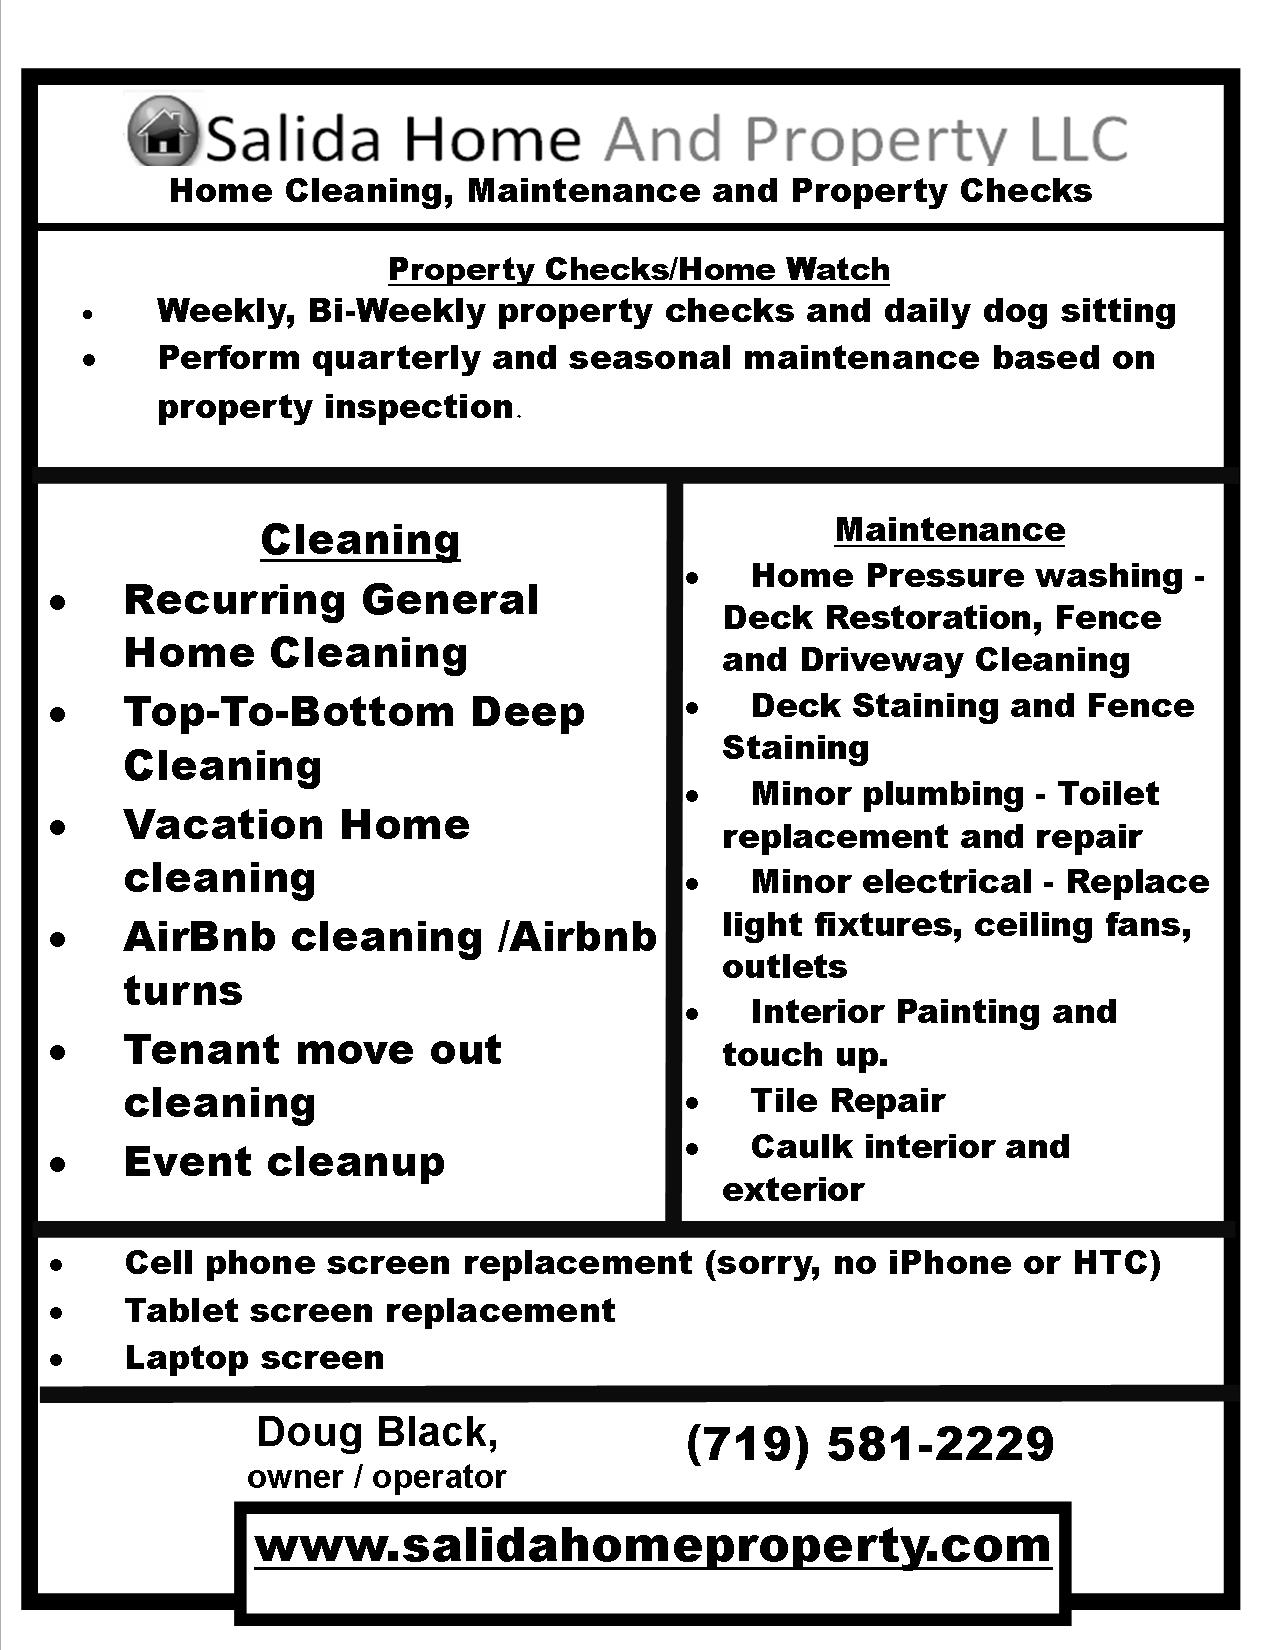 residential service offering listing salida home and property llc click here for printable flyer